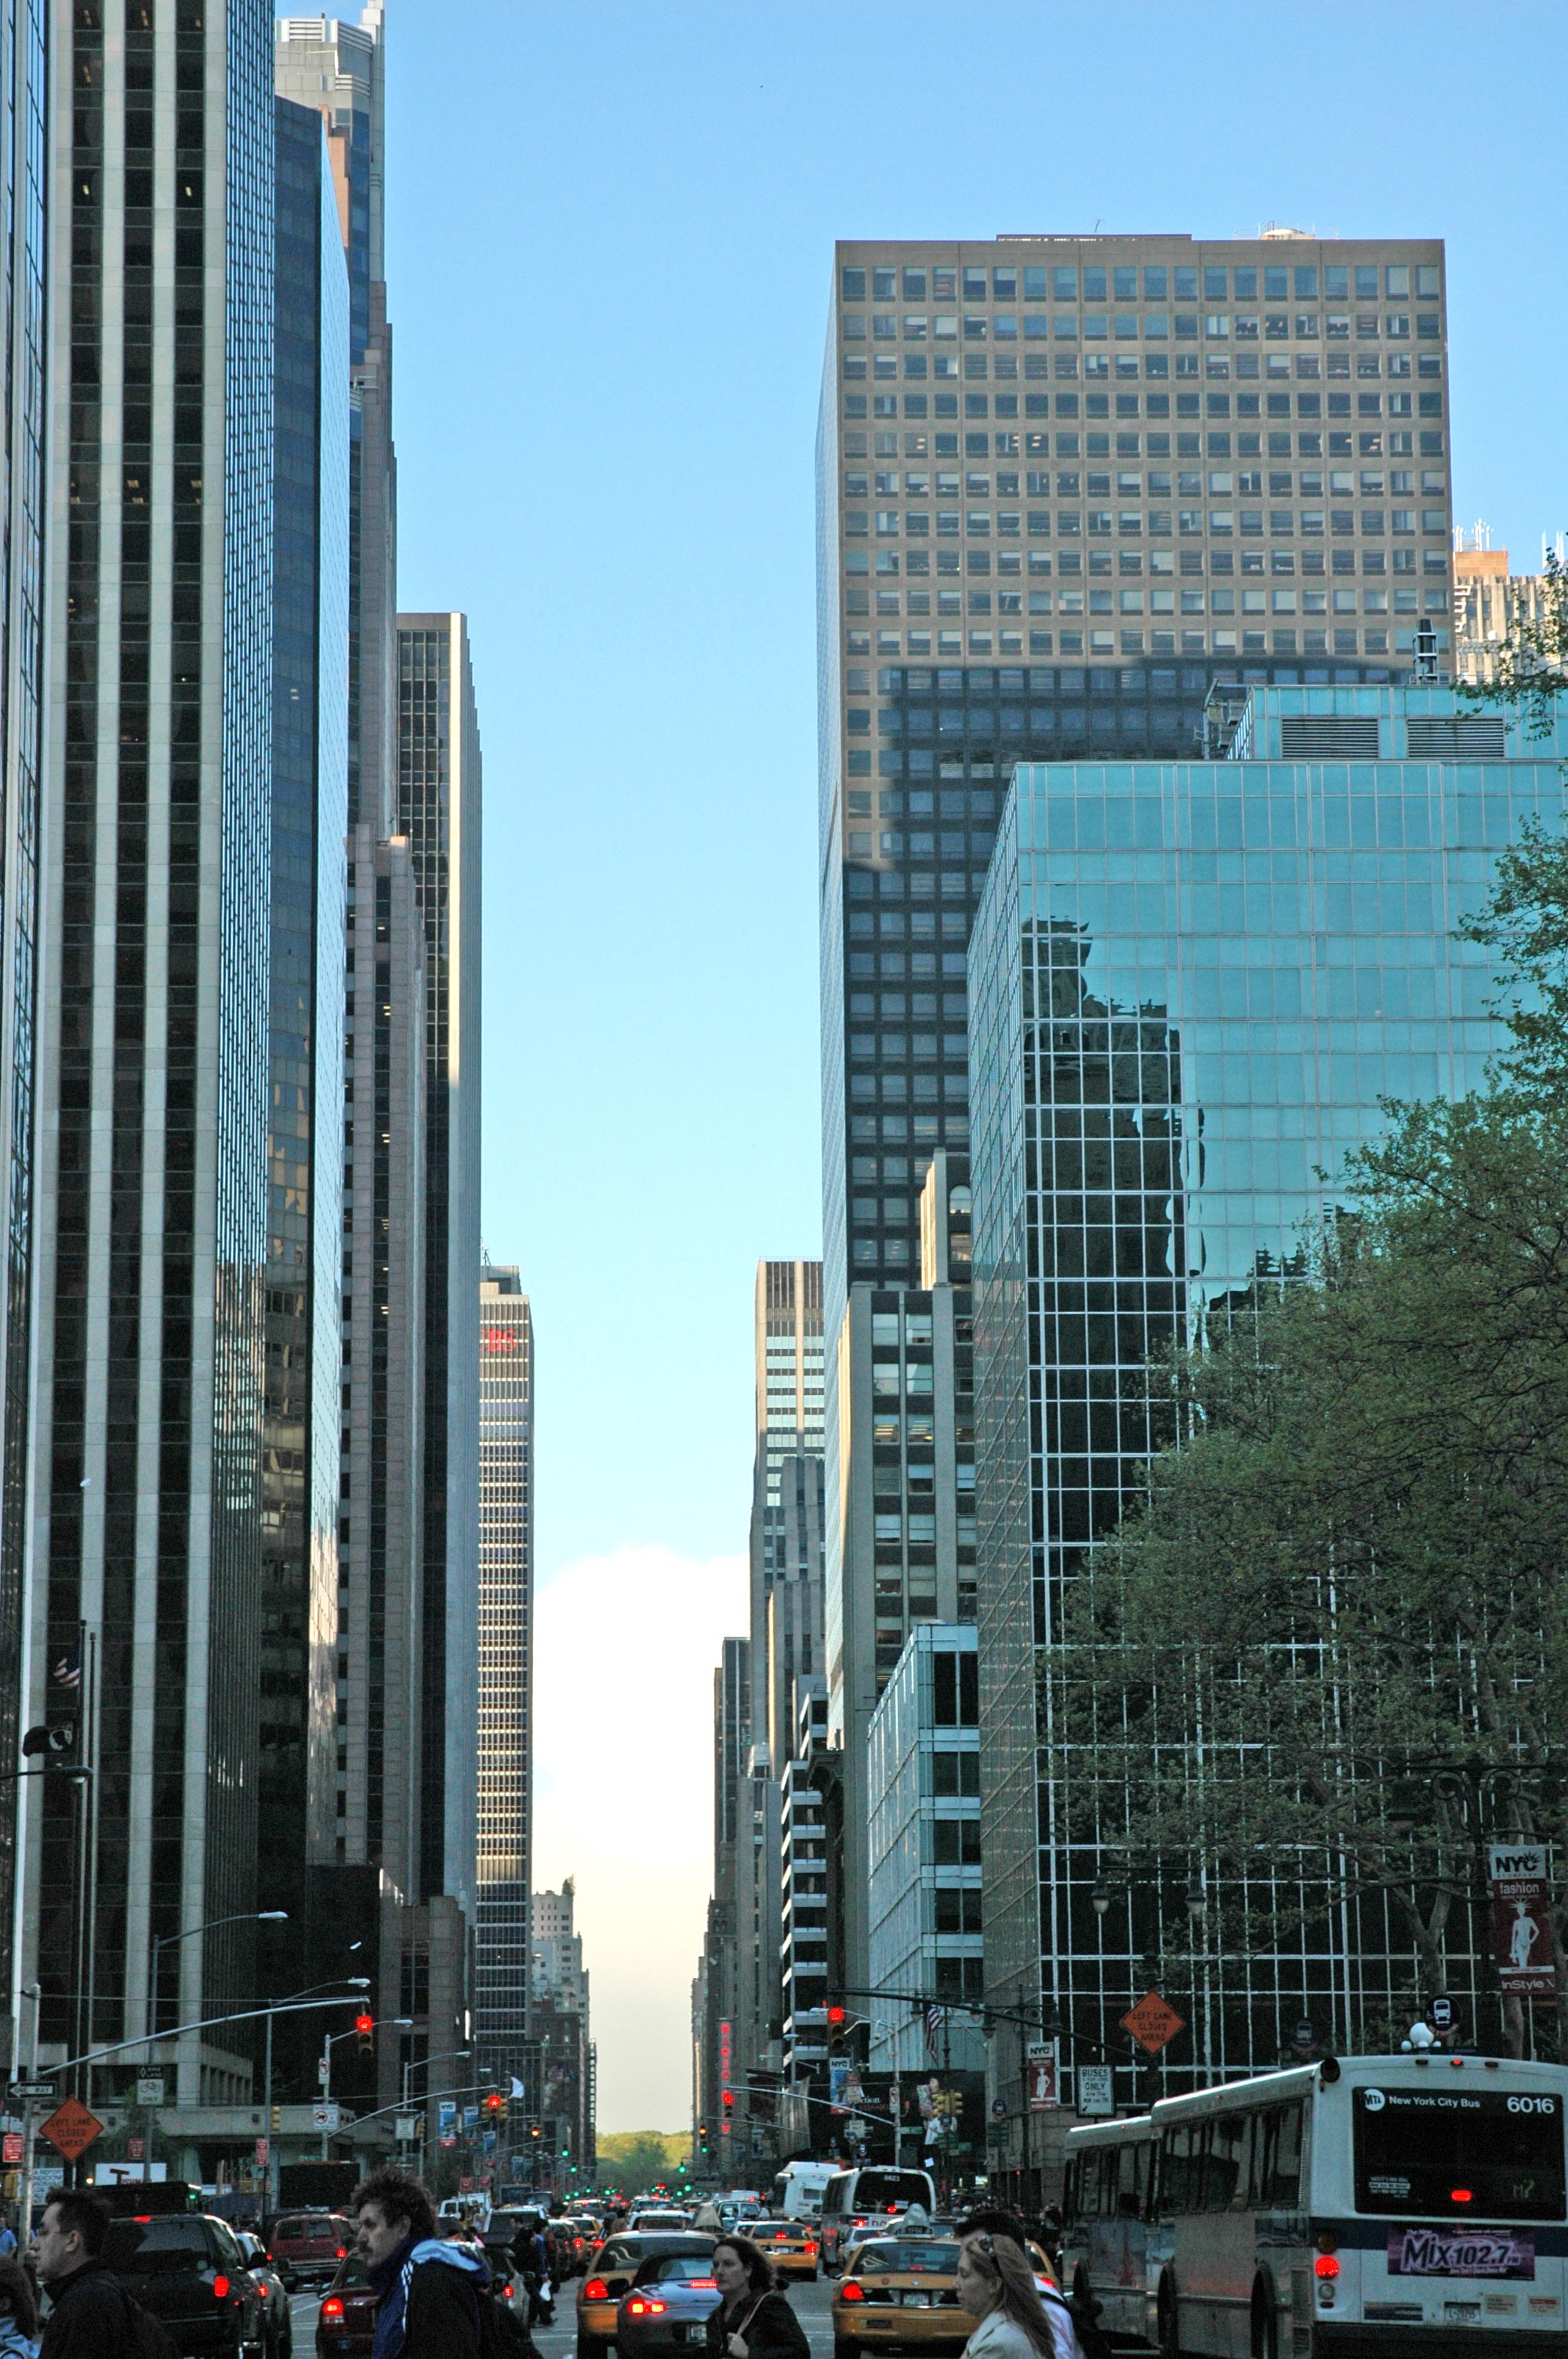 6th avenue nyc today